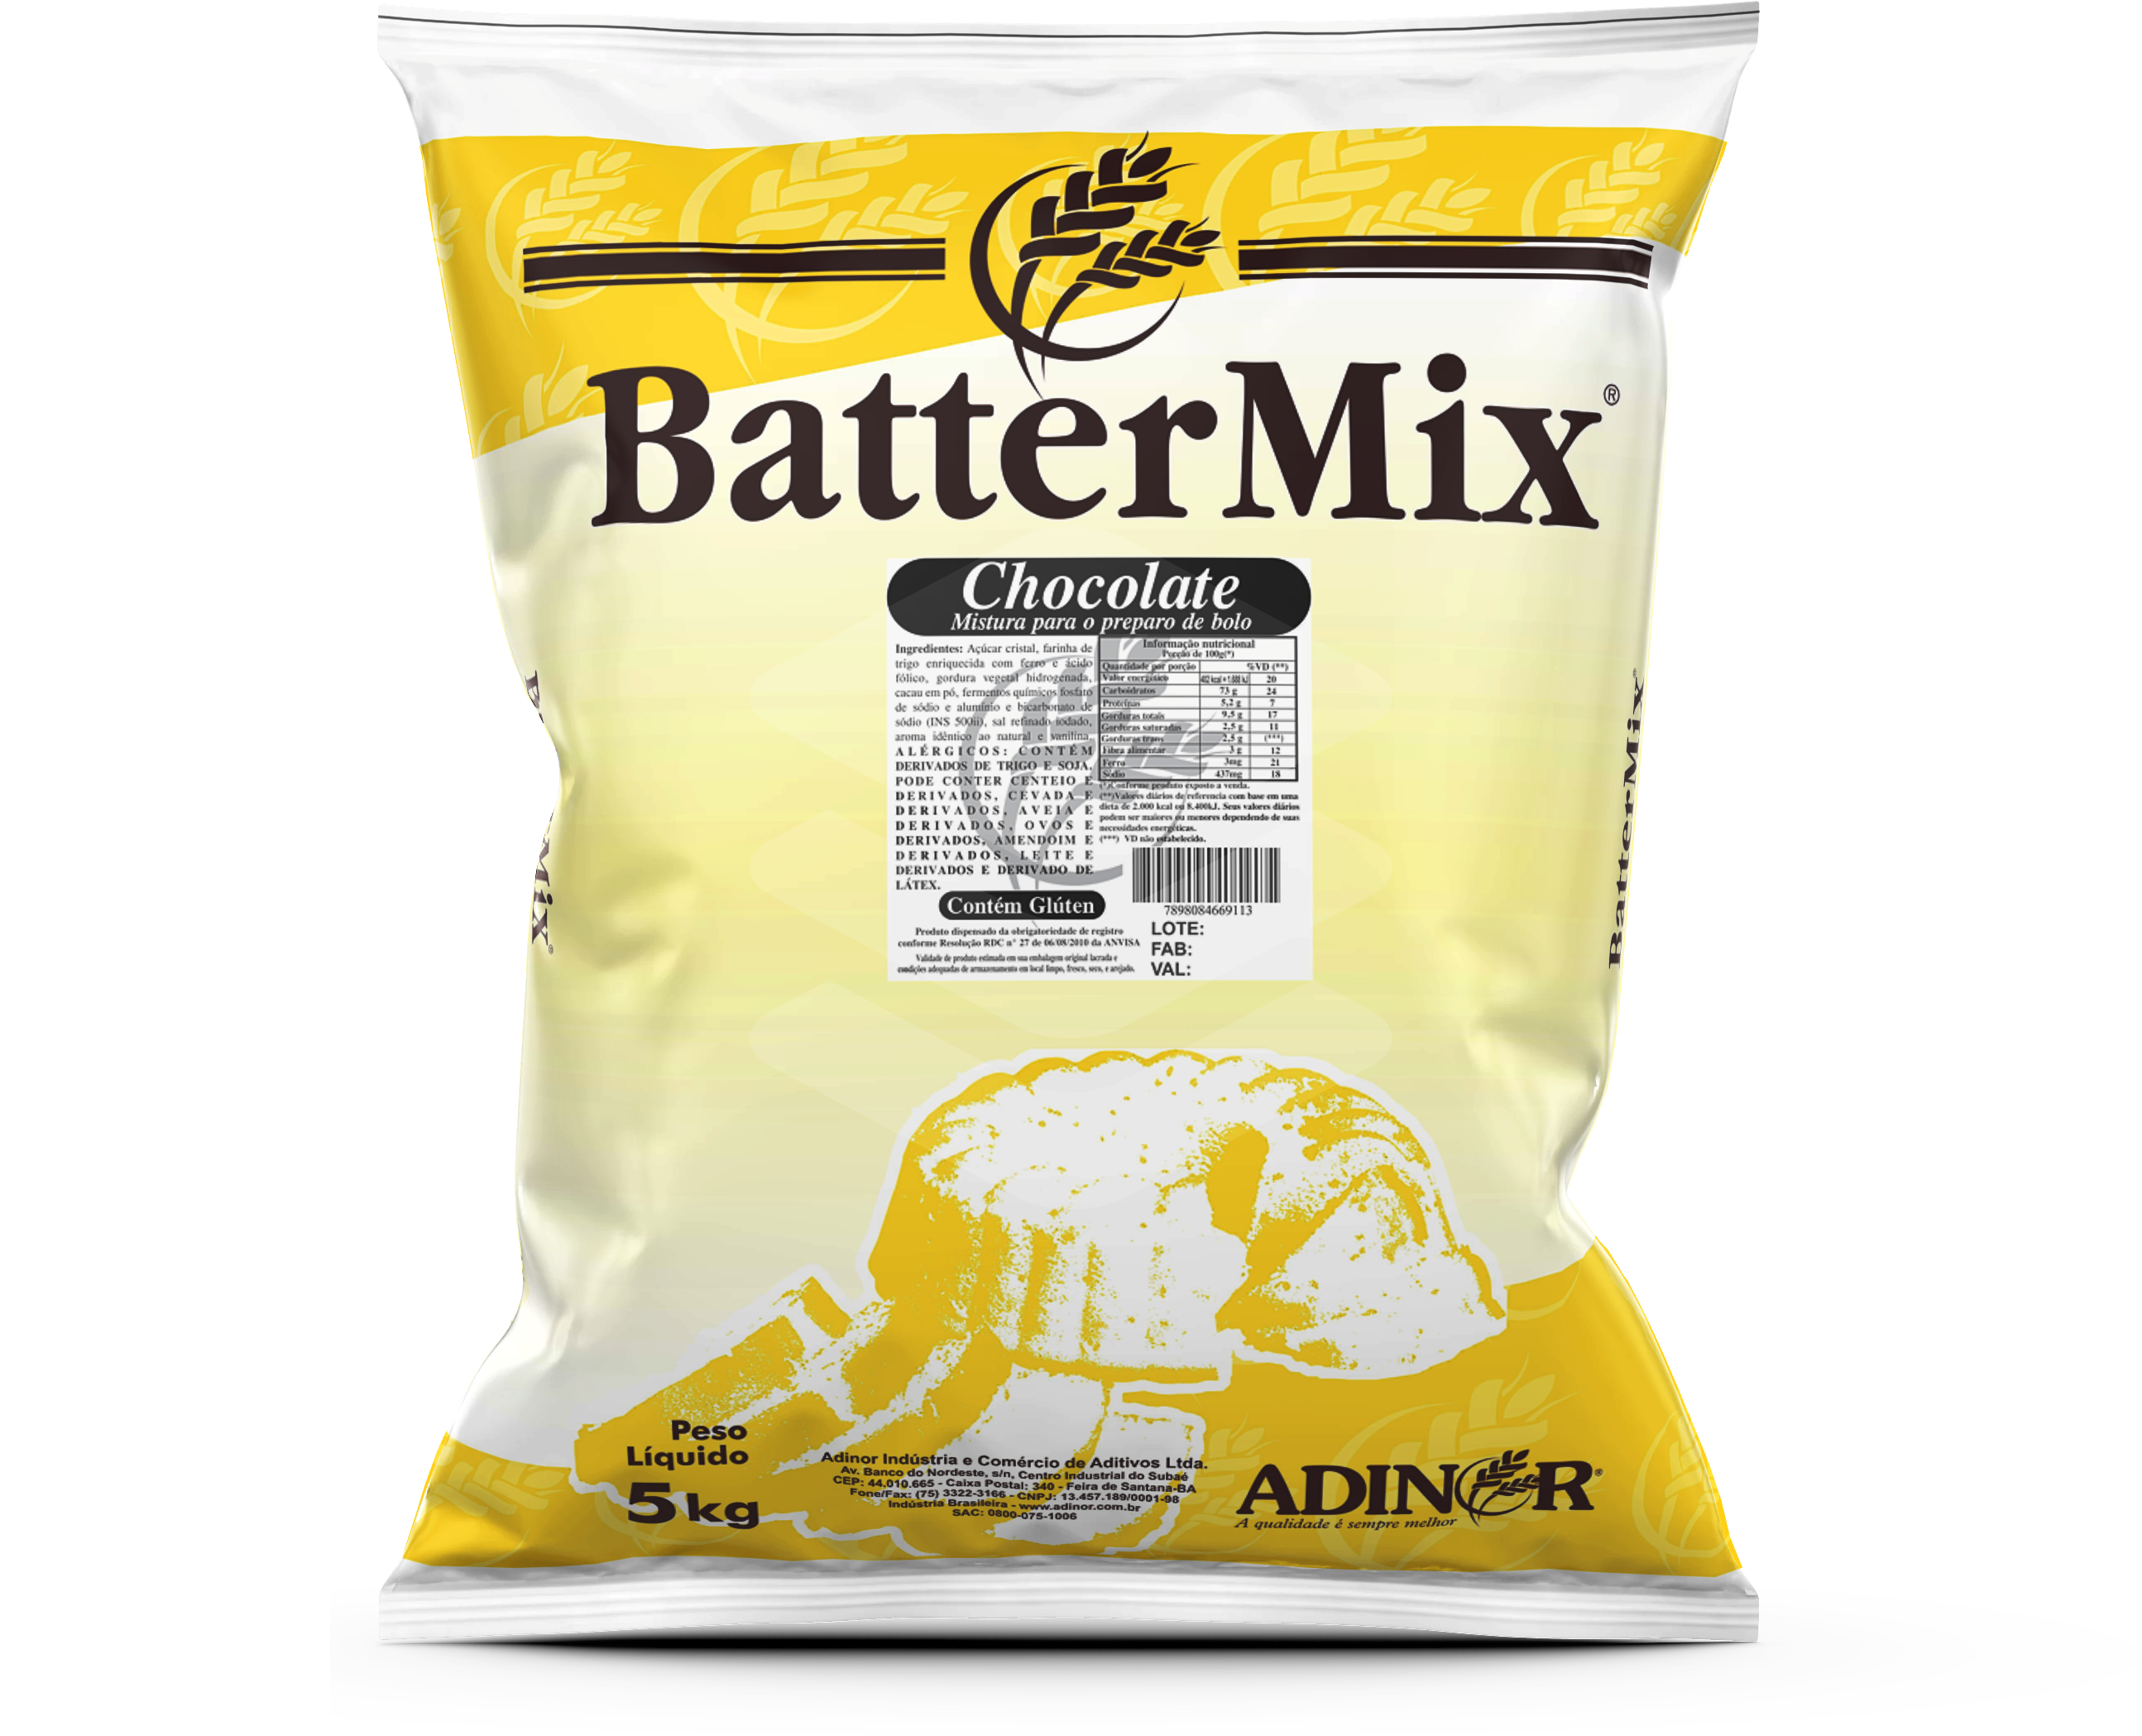 Battermix Chocolate